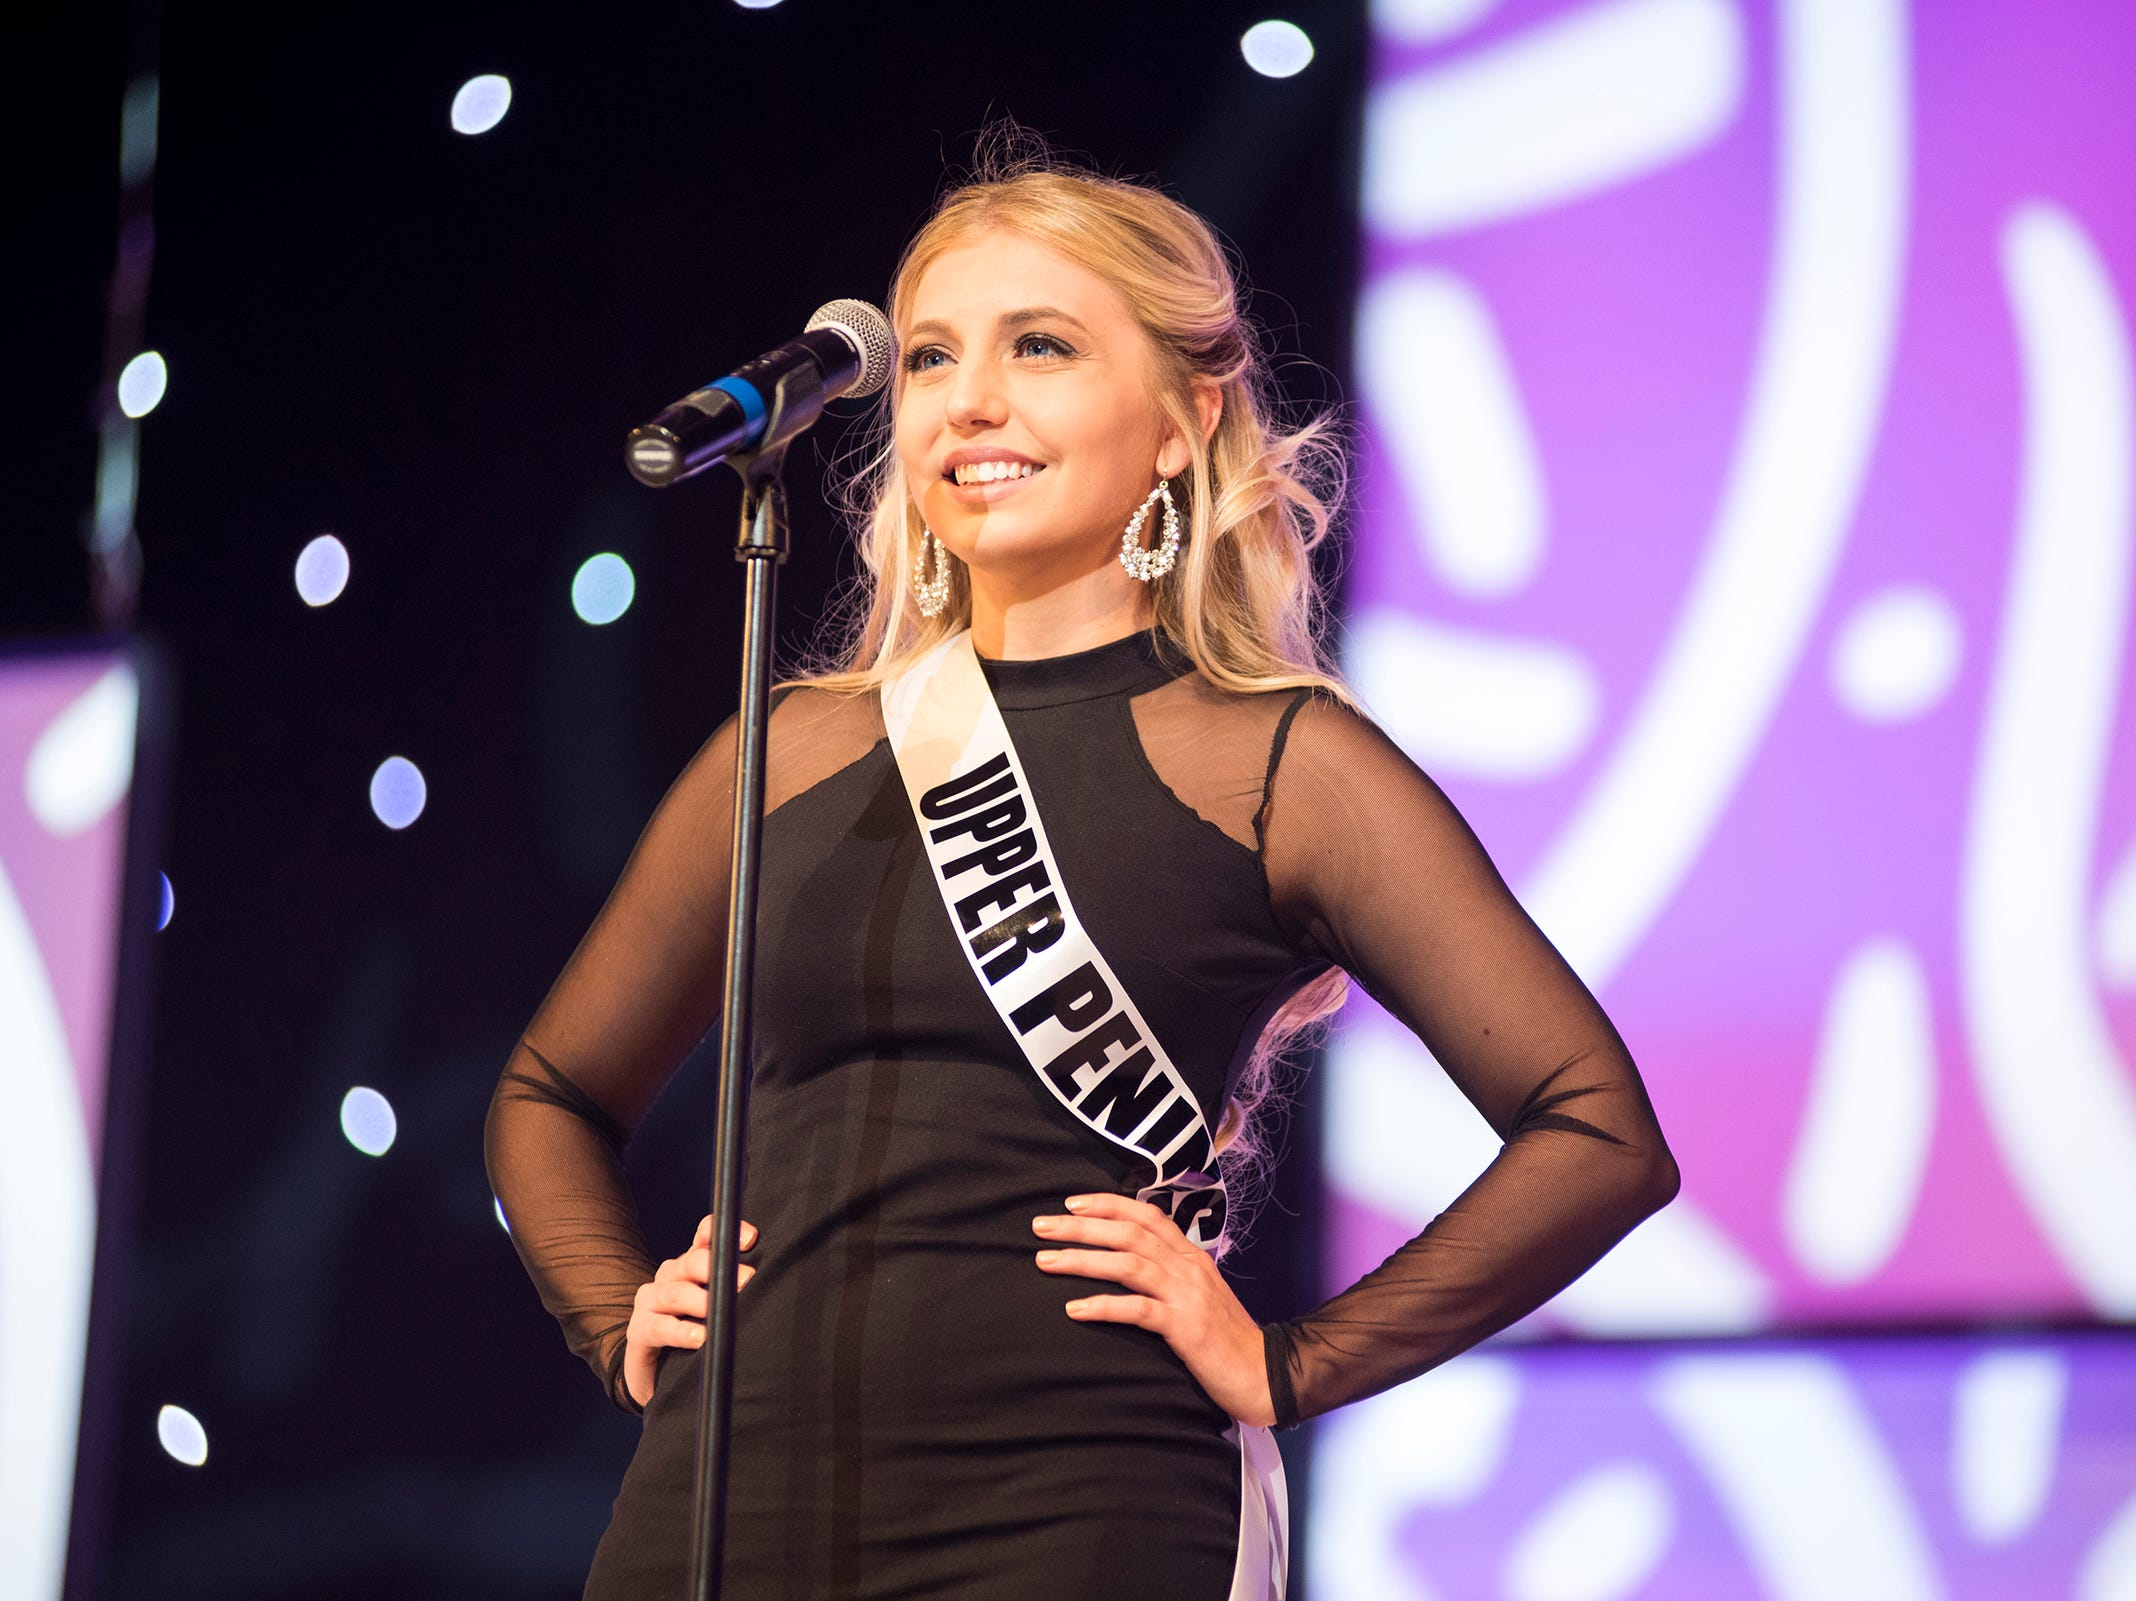 Miss Upper Peninsula Macy Niemisto introduces herself Saturday, Sept. 22, 2018 at the start of the Miss Michigan USA competition at McMorran Theater.